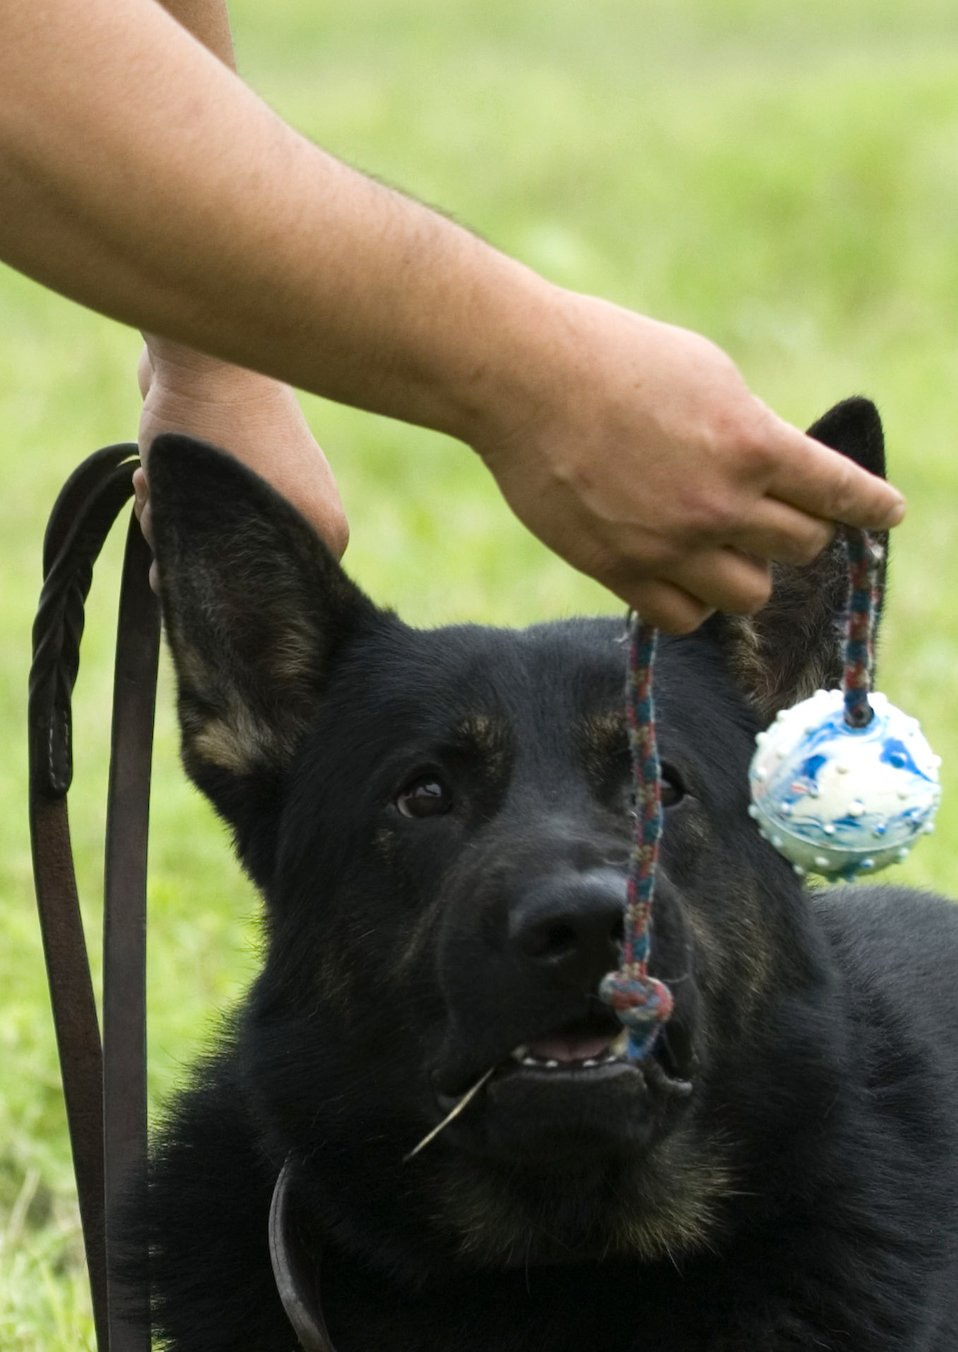 Instructors' barking orders understood at canine boot camp